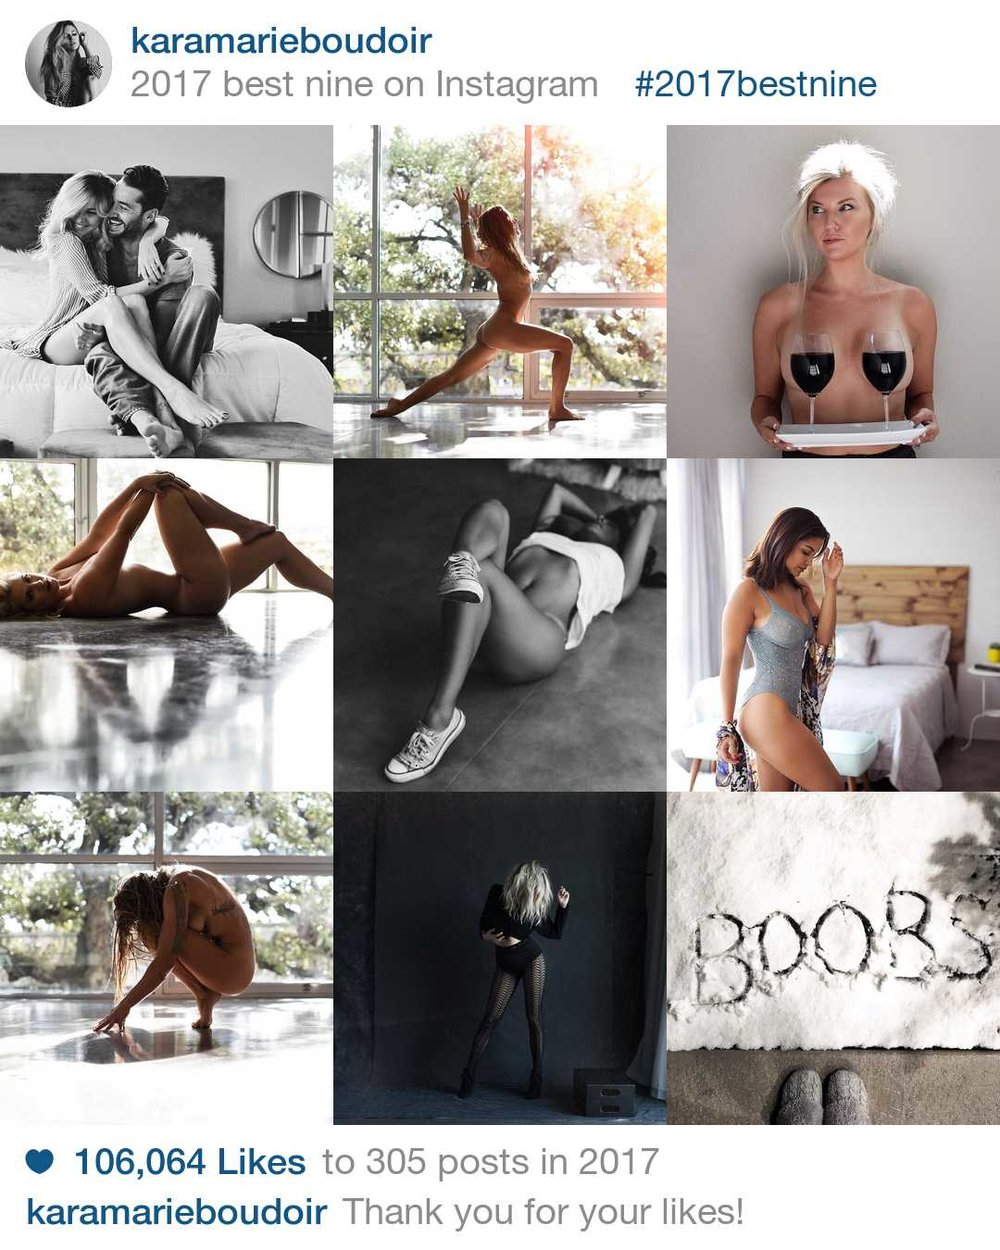 Follow @KaraMarieBoudoir on Instagram HERE.